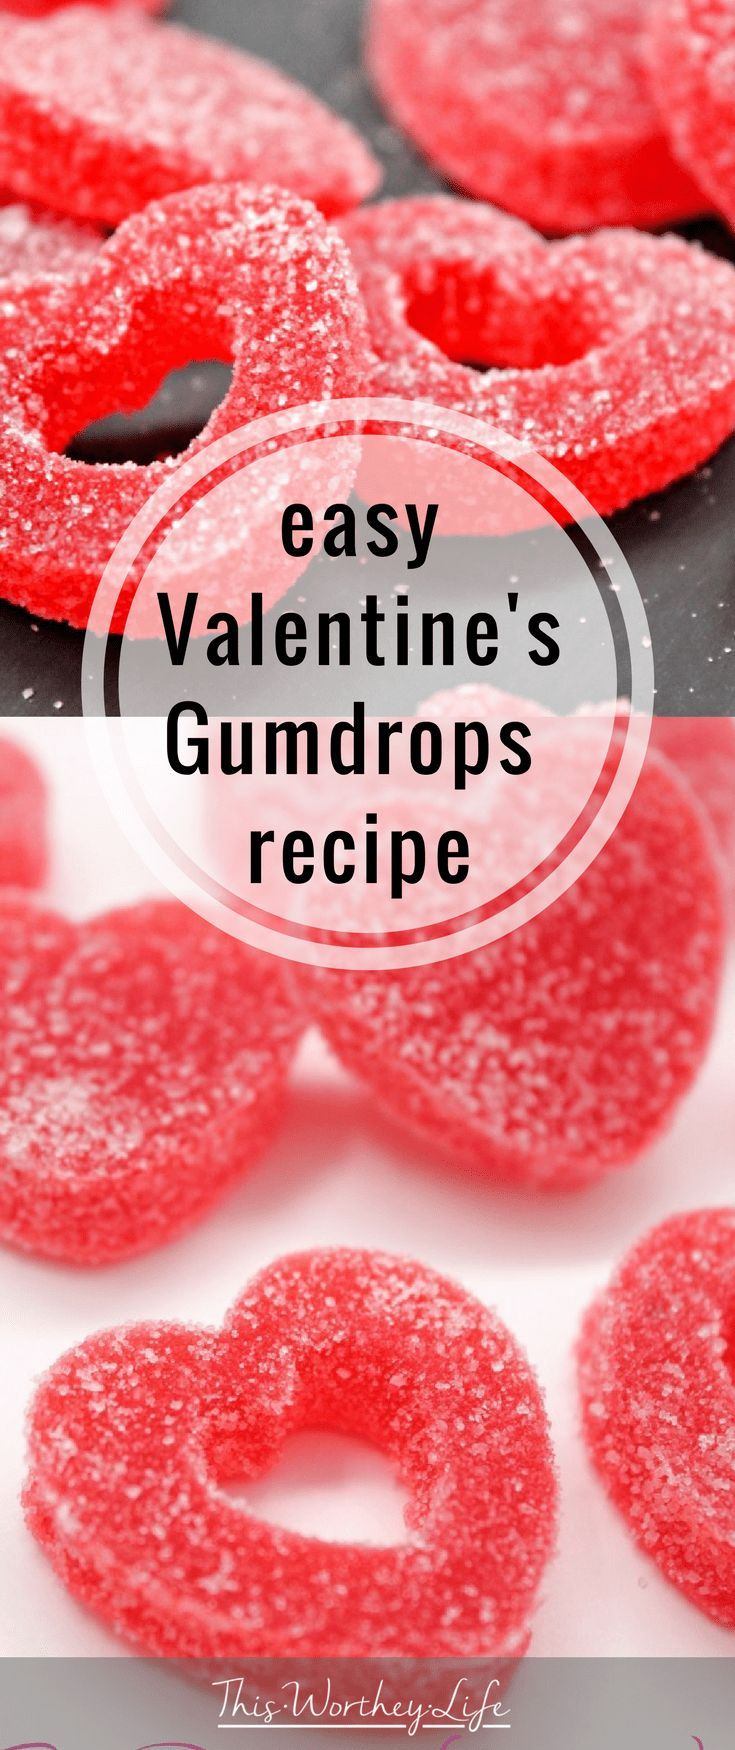 If you need a cute and #easy Valentine's Day #recipe, check out this amazing homemade Gumdrops Recipe. These make great treats #forkids looking to bring something #forschool, or even adults needing to bring a sweet treat #forwork! These are definitely a hit!